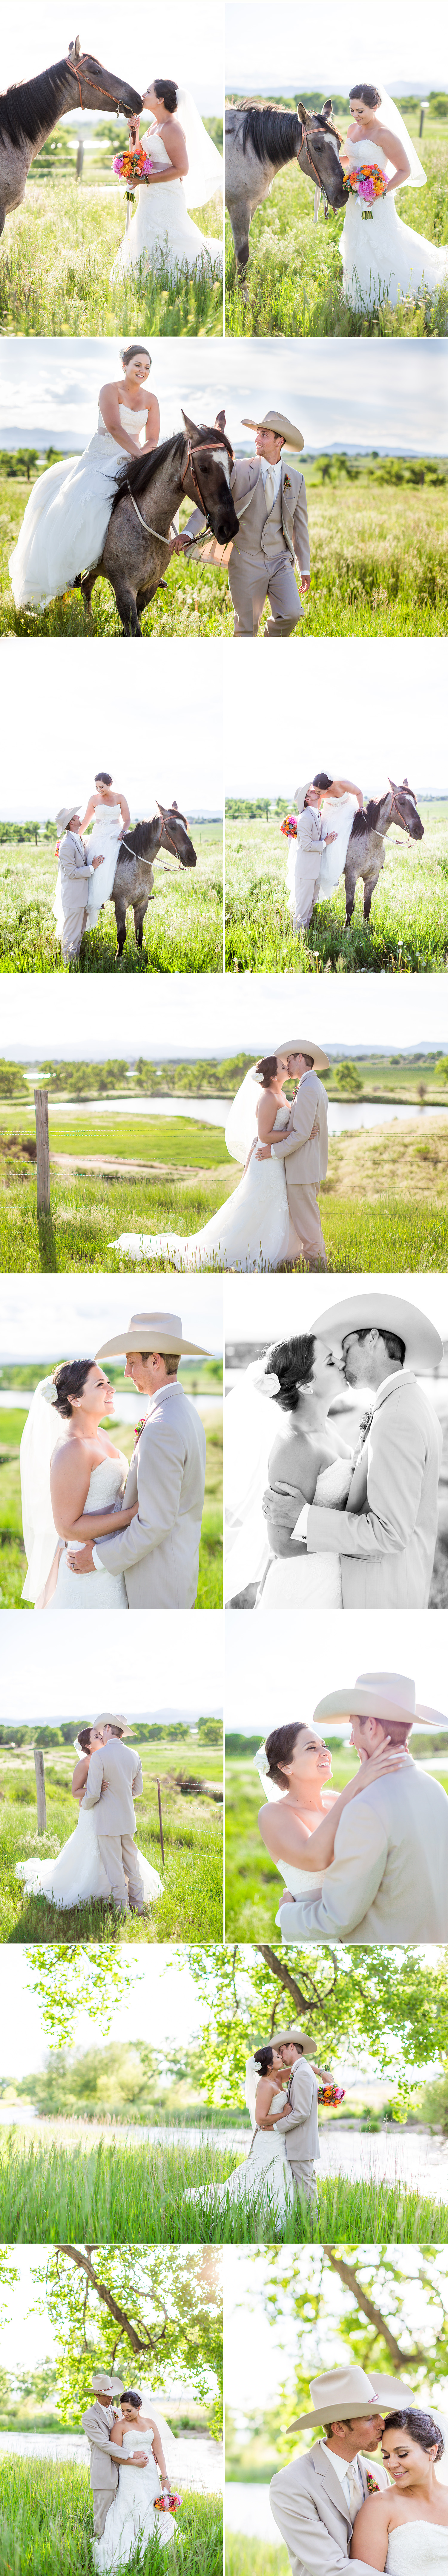 7_bride with horse photography.jpg